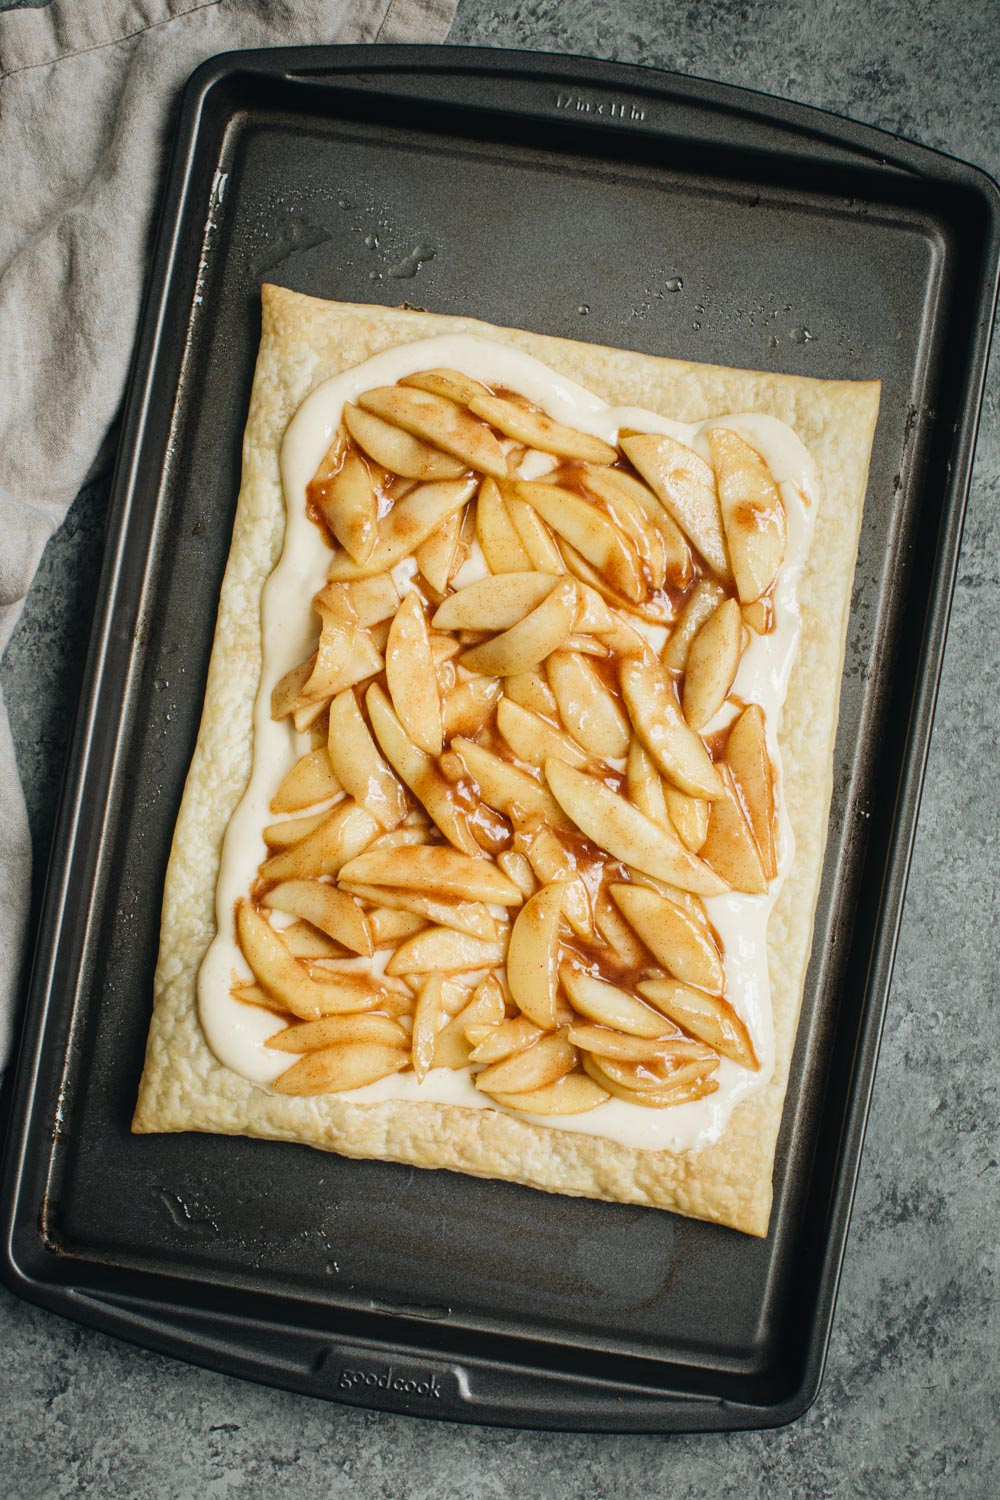 Apple mixture layer on top of pastry for danishes.